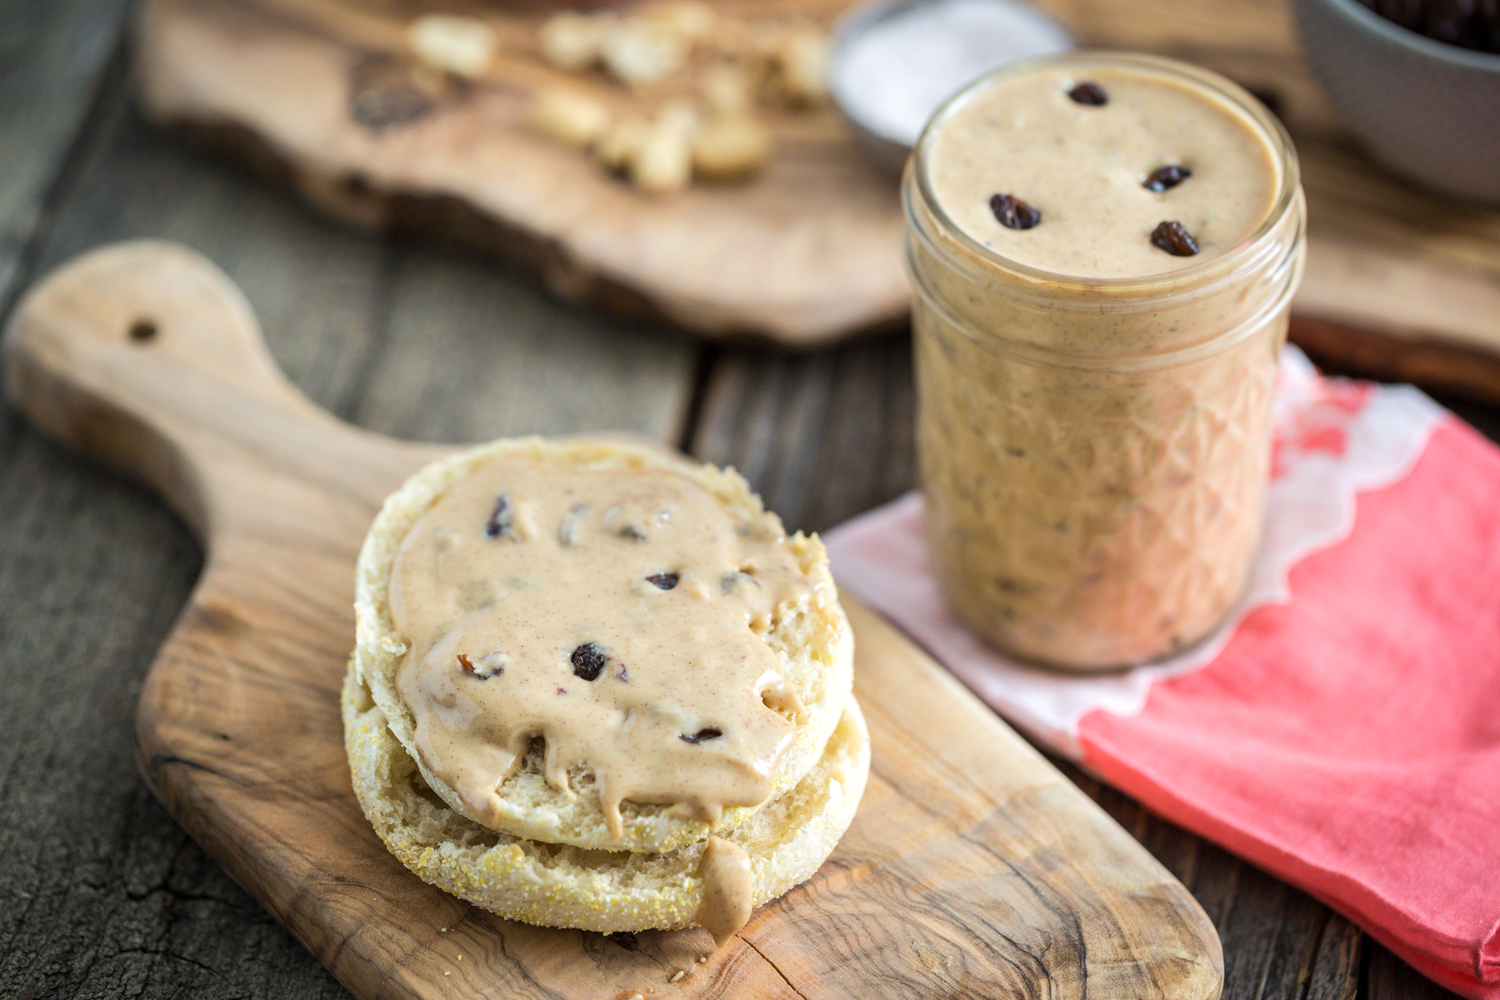 Cinnamon Raisin Peanut Butter